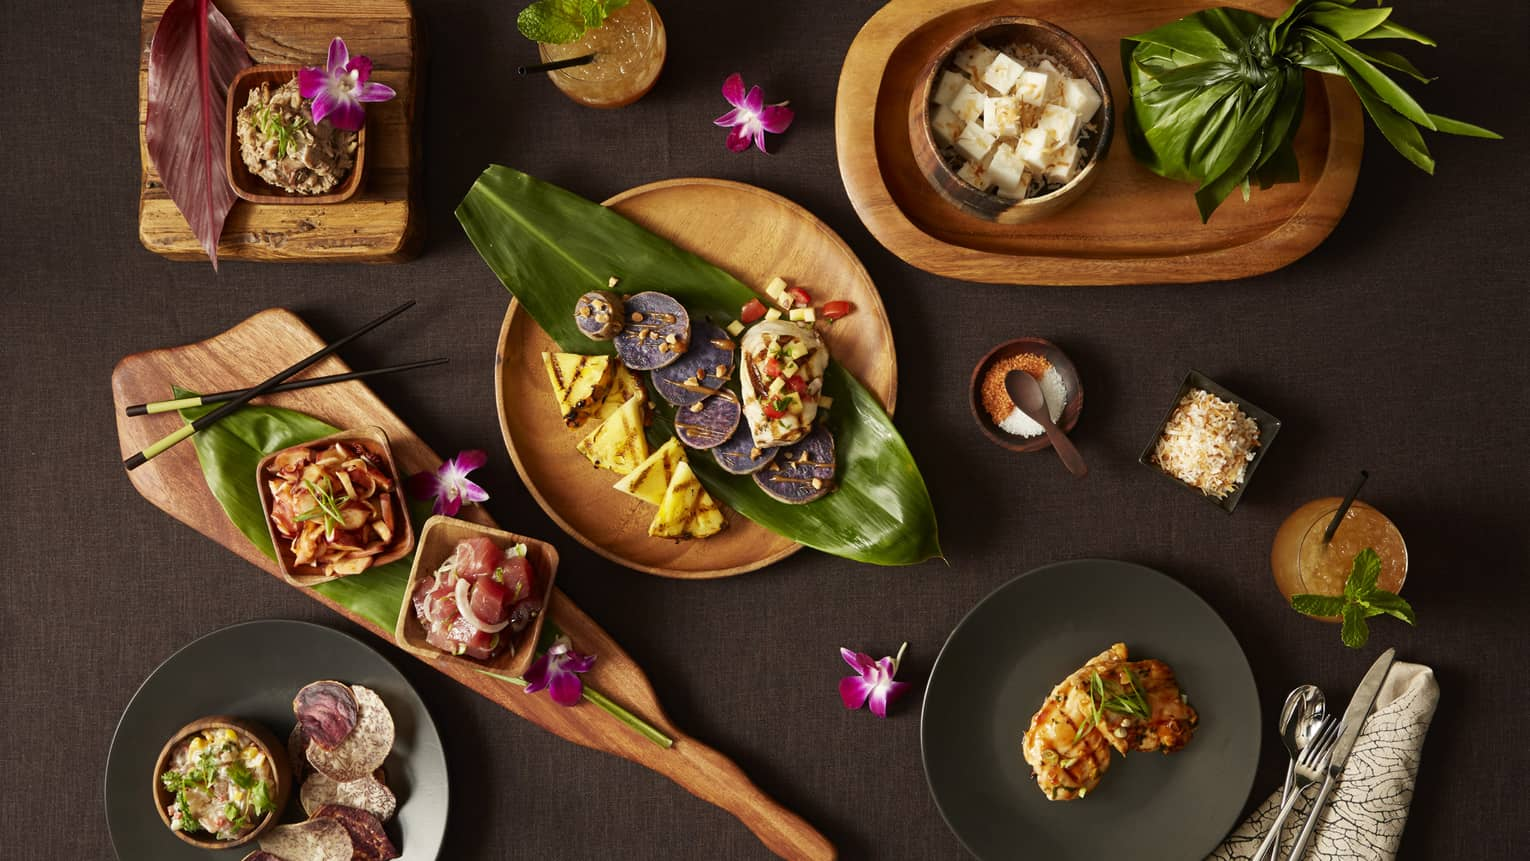 Aerial view of wooden bowls with contemporary food, garnished with large leaves, orchids and chopsticks